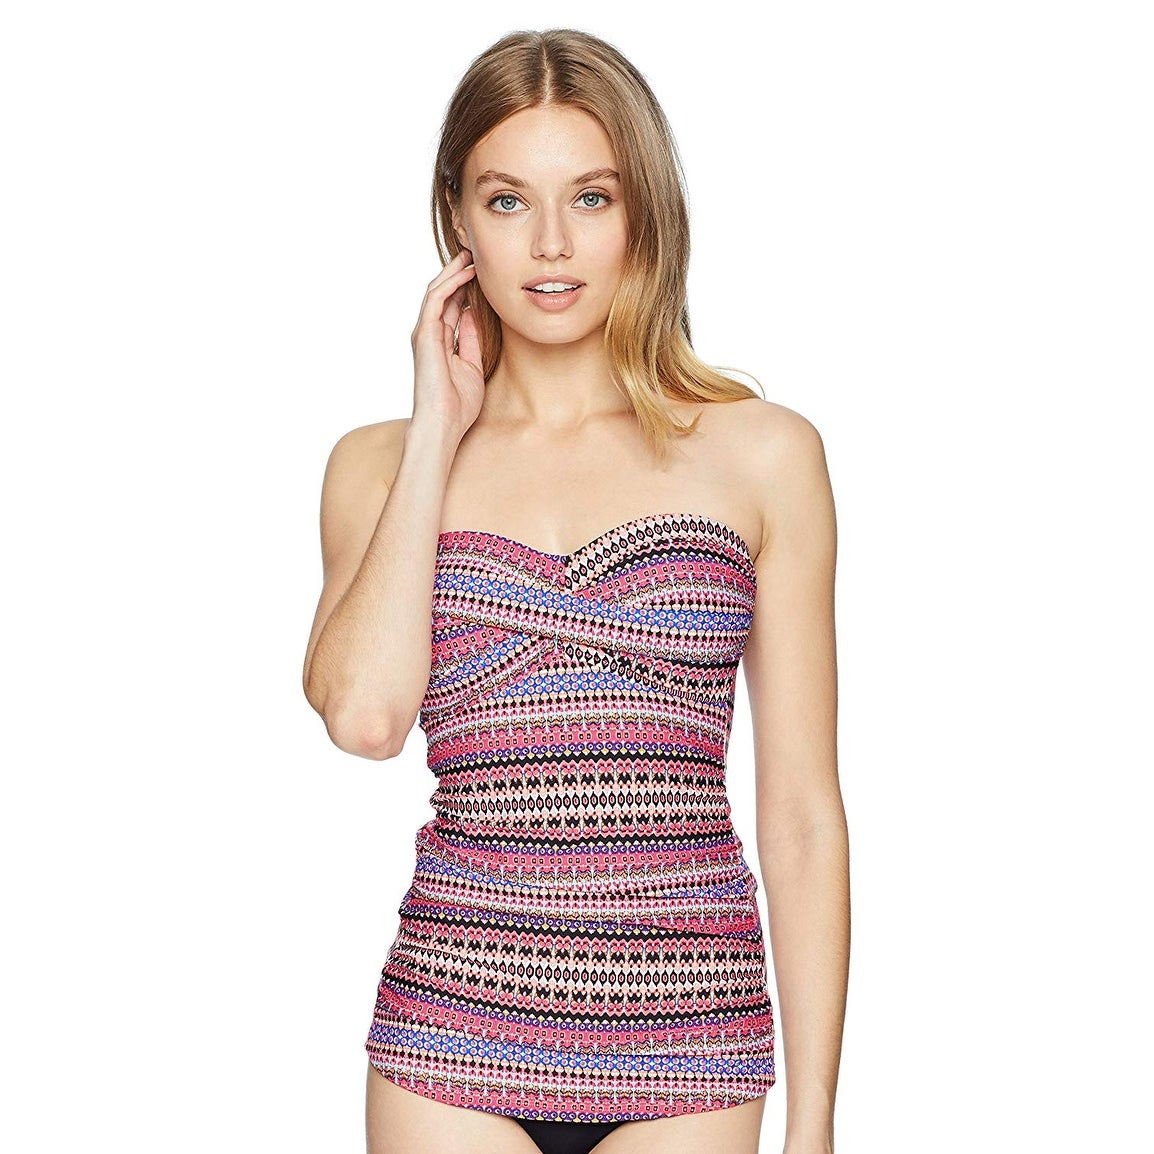 c338cf68a23 Shop Anne Cole Women's Twist Front Shirred Bandeau Tankini Swim Top - Free  Shipping On Orders Over $45 - Overstock - 26951997